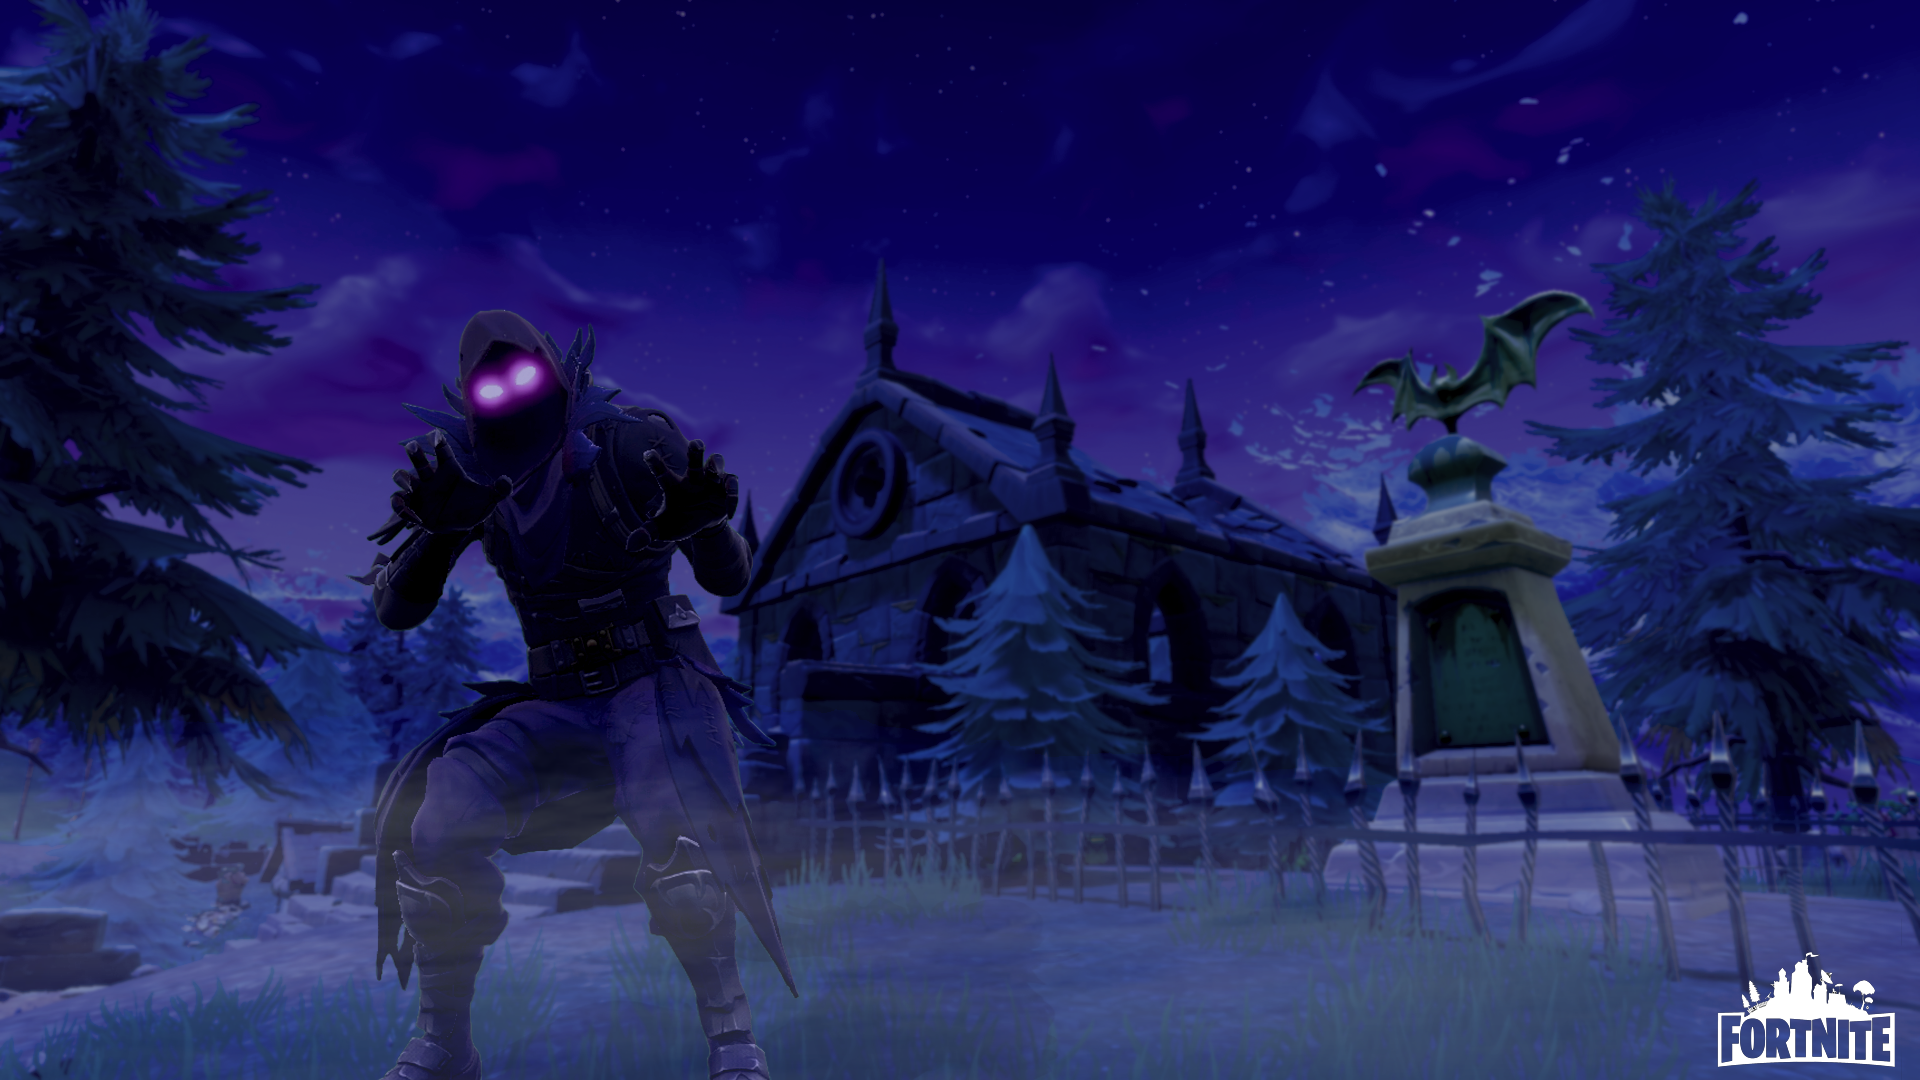 Raven Wallpaper Fortnite 1920x1080 Wallpaper Teahub Io